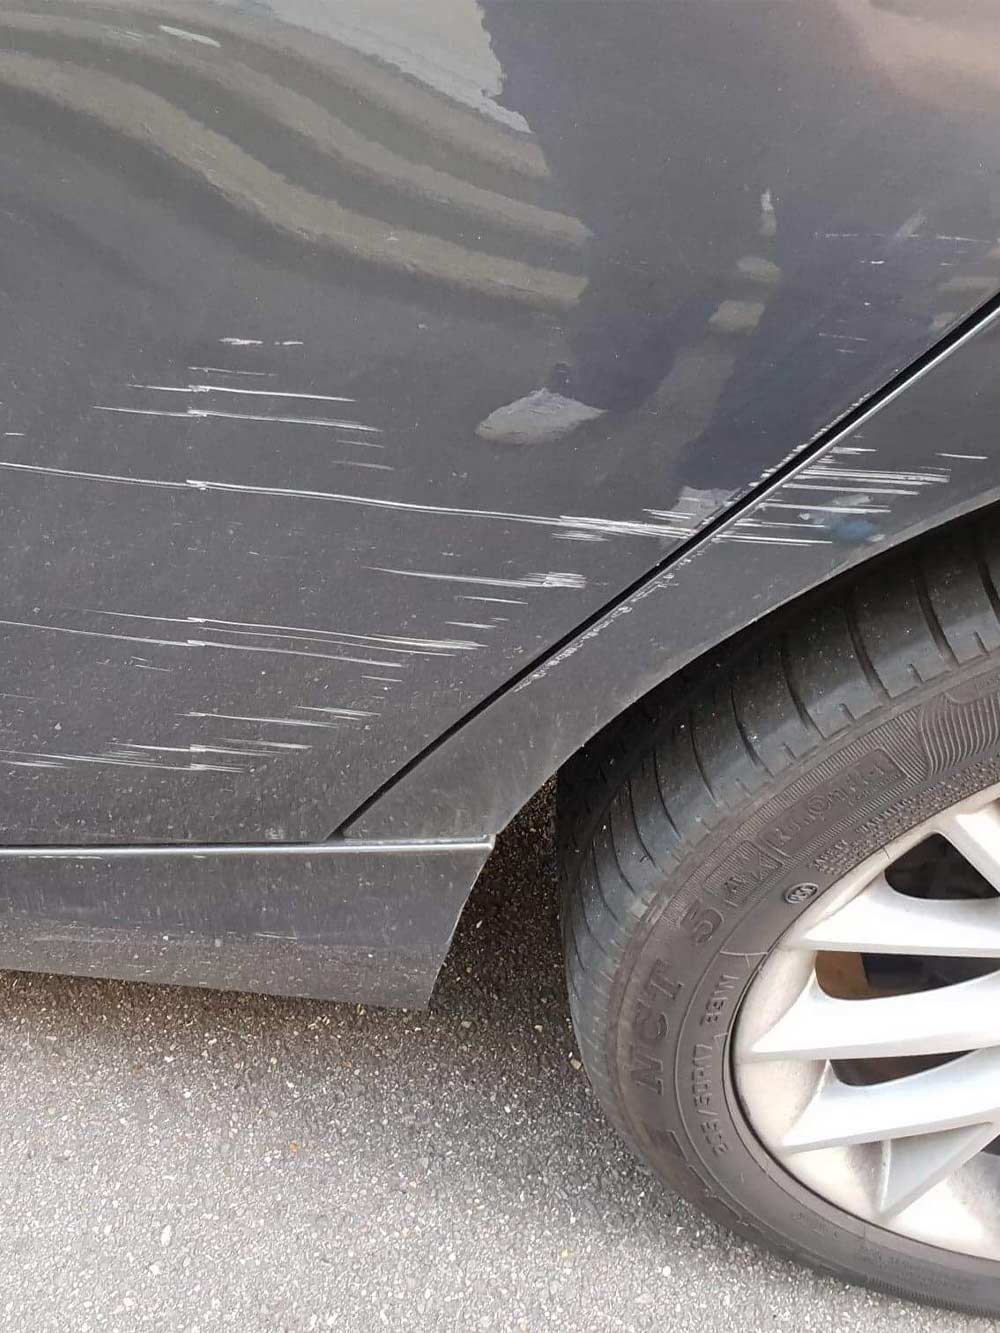 Bodywork scratches and vandal damage before